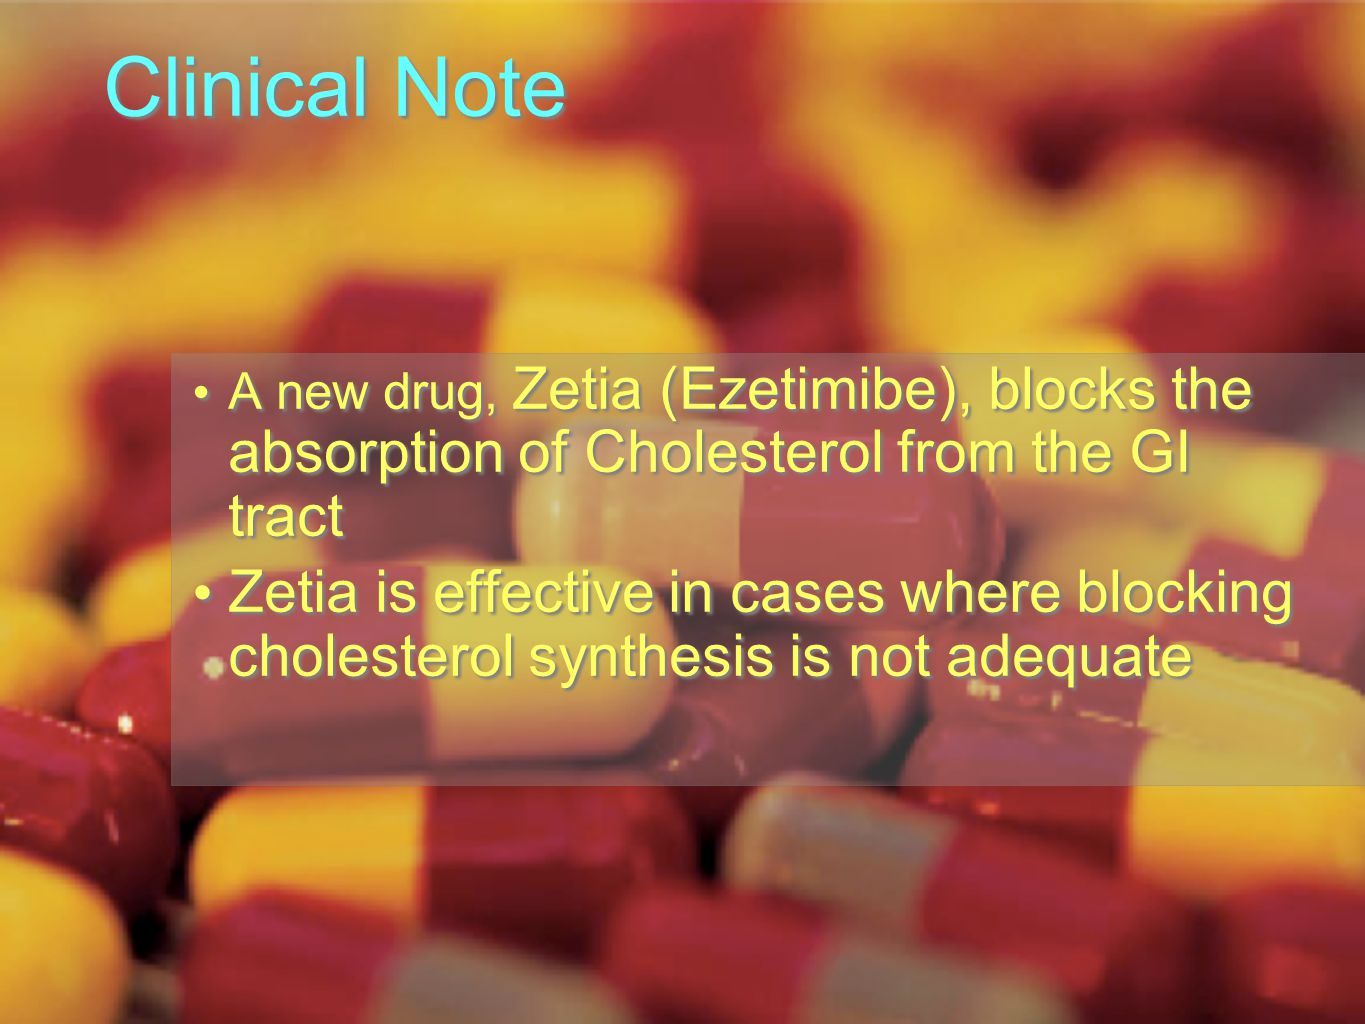 Clinical Note A new drug, Zetia (Ezetimibe), blocks the absorption of Cholesterol from the GI tract Zetia is effective in cases where blocking cholesterol synthesis is not adequate A new drug, Zetia (Ezetimibe), blocks the absorption of Cholesterol from the GI tract Zetia is effective in cases where blocking cholesterol synthesis is not adequate